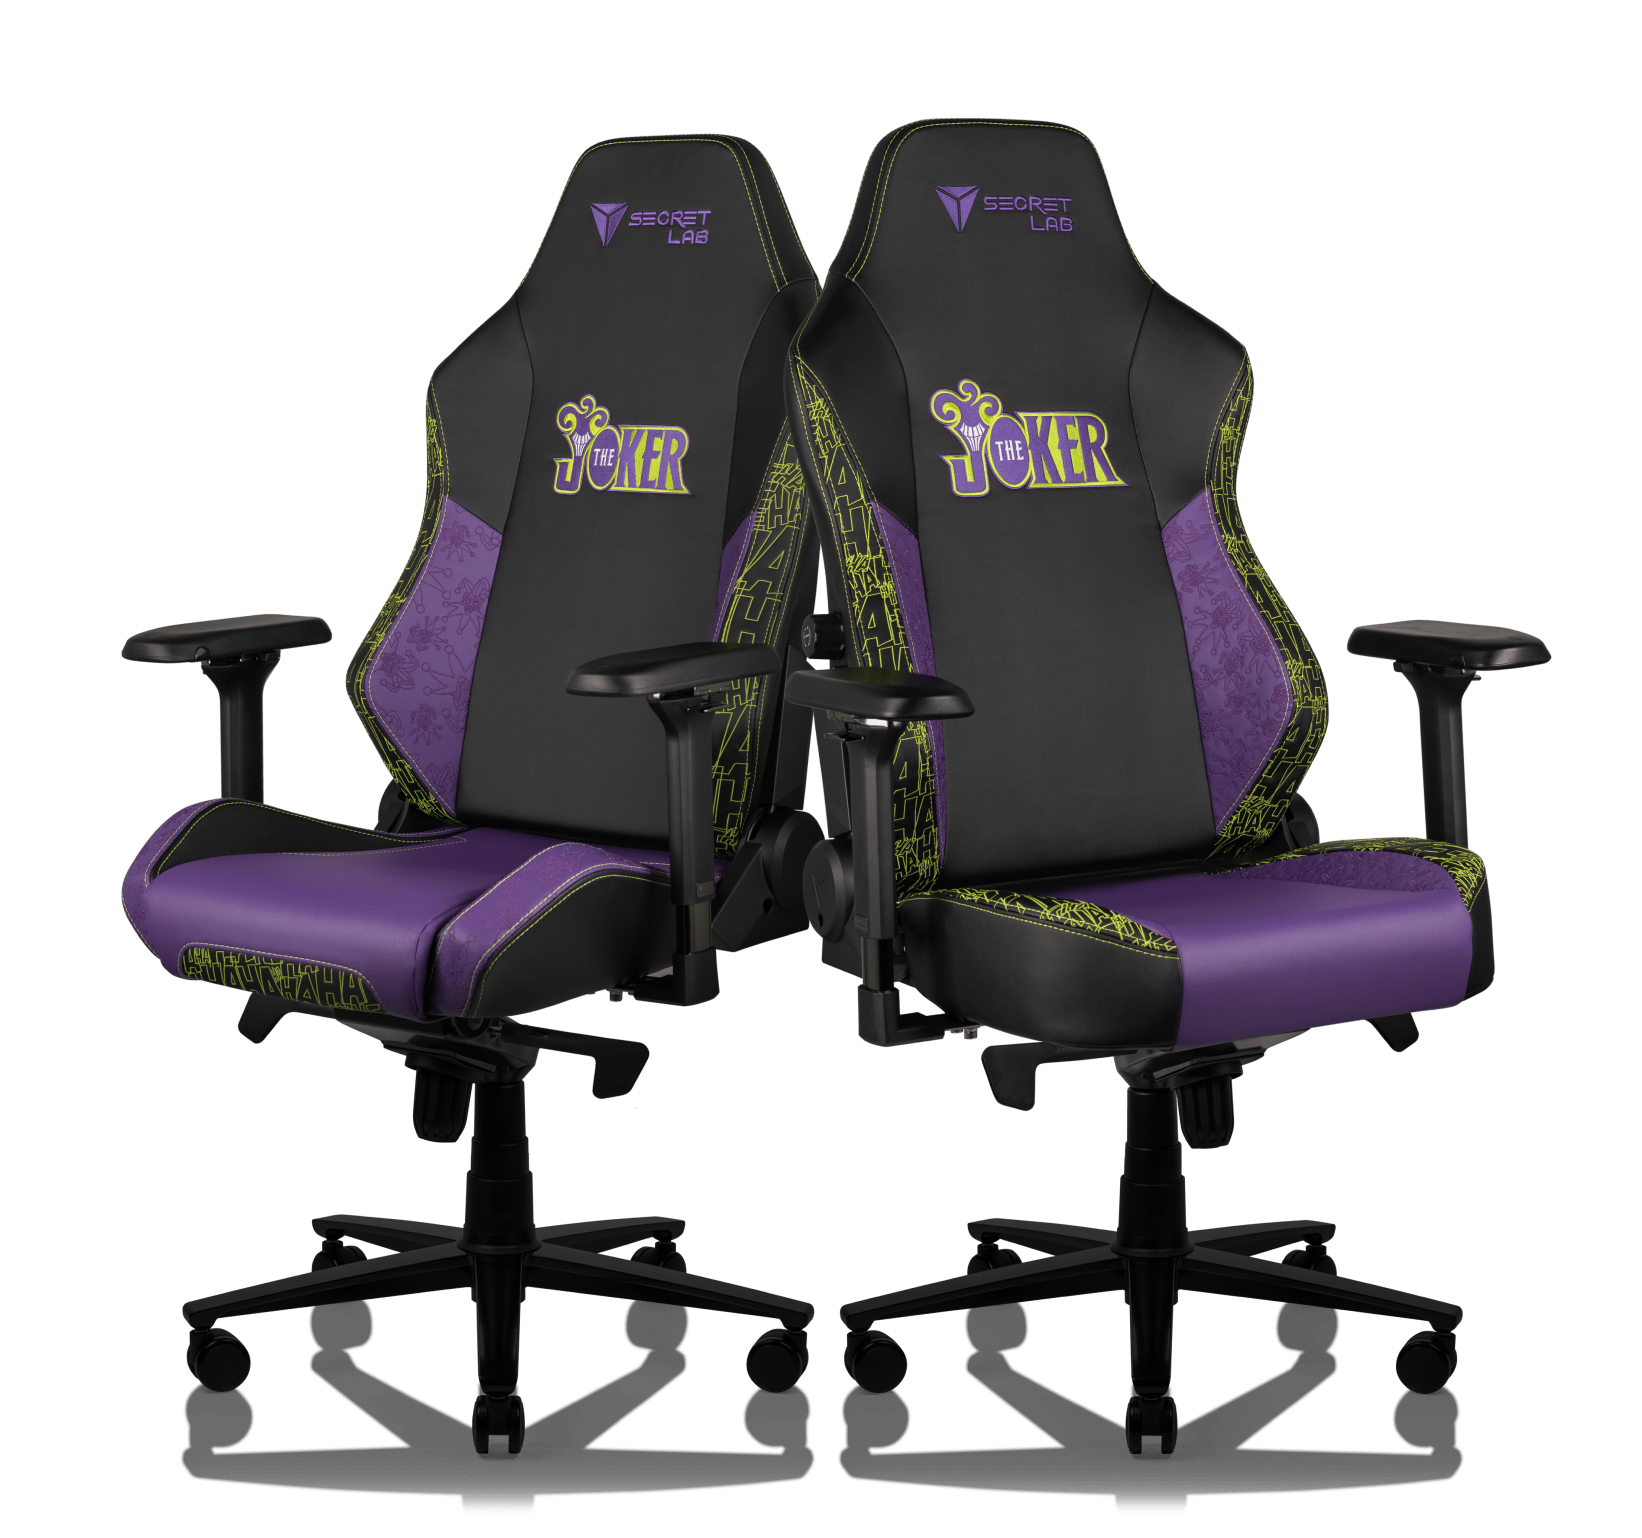 Link a collab-thejoker-splash-chairs-min